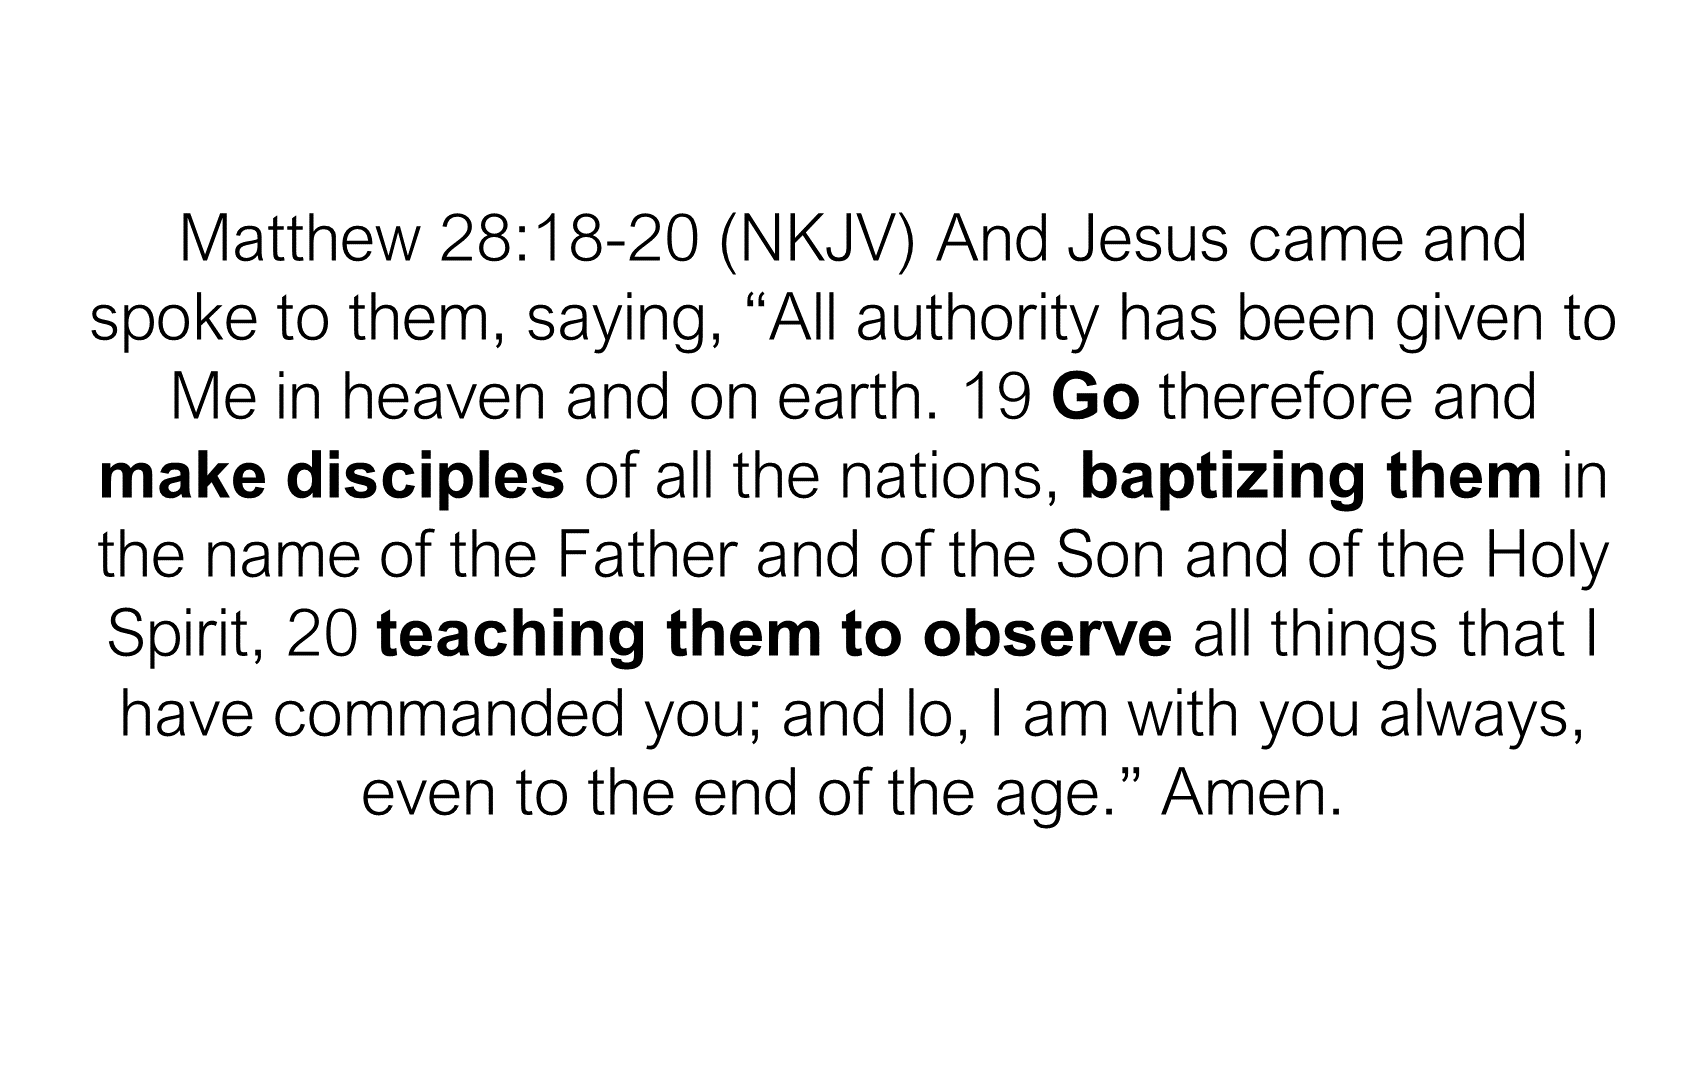 ESH-17 - The Discipline Of Disciple-Making - Making Disciples & Baptizing Them (5)